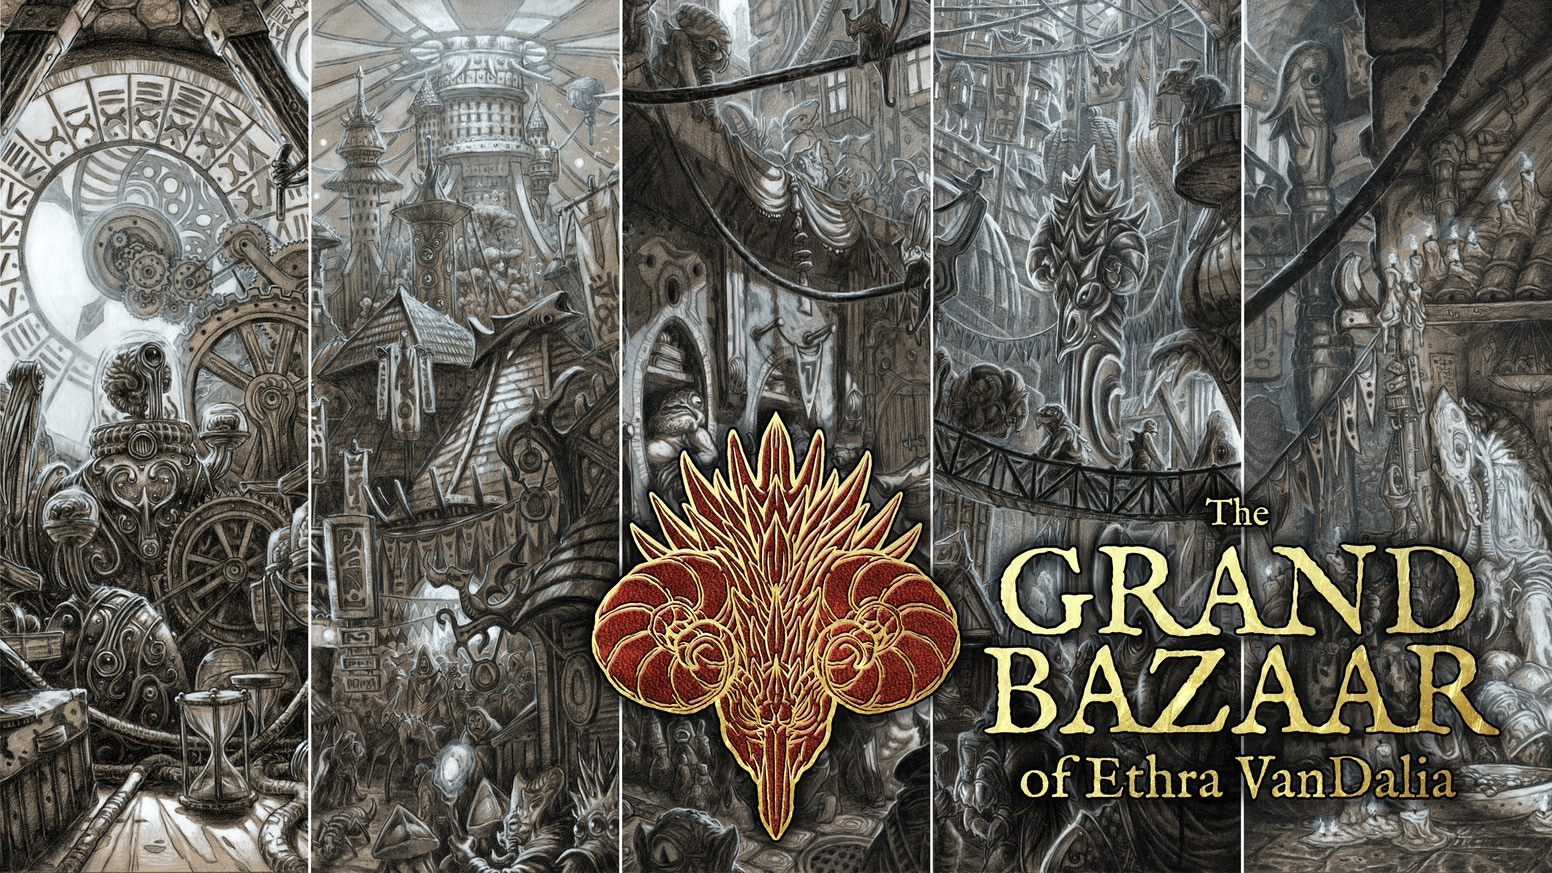 Adventure! Excitement! Shopping! Come to the Grand Bazaar of Ethra VanDalia for all of your worldly, spiritual and ethereal needs!